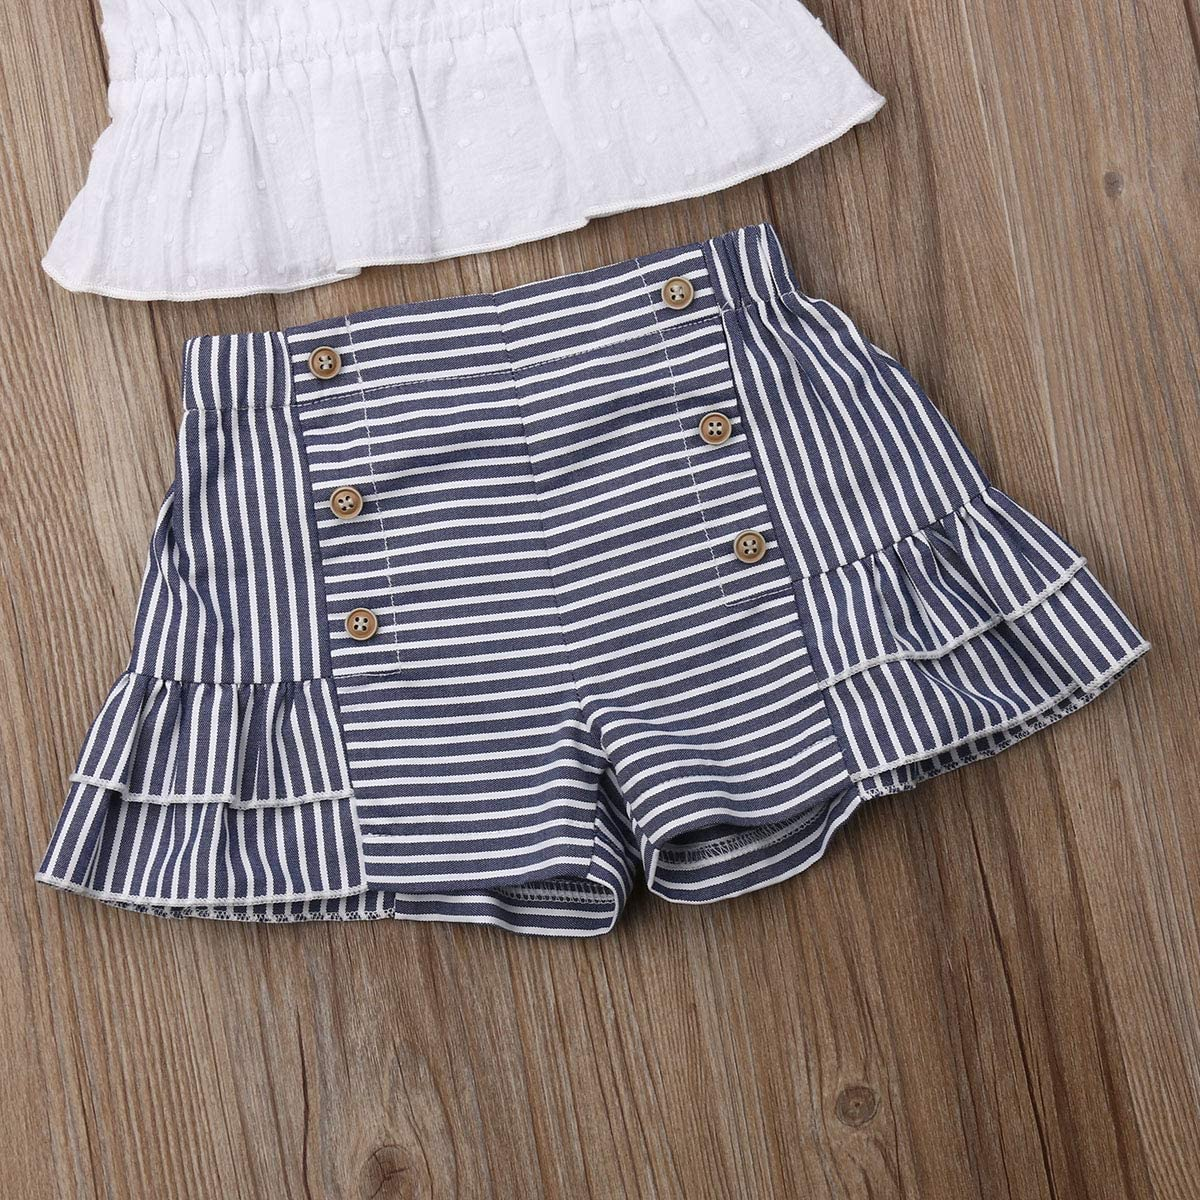 Toddler Baby Girls Sleeveless Pleated Crop Top+Striped Ruffle Shorts+Headband Outfits Summer 3 PCS Clothes Set